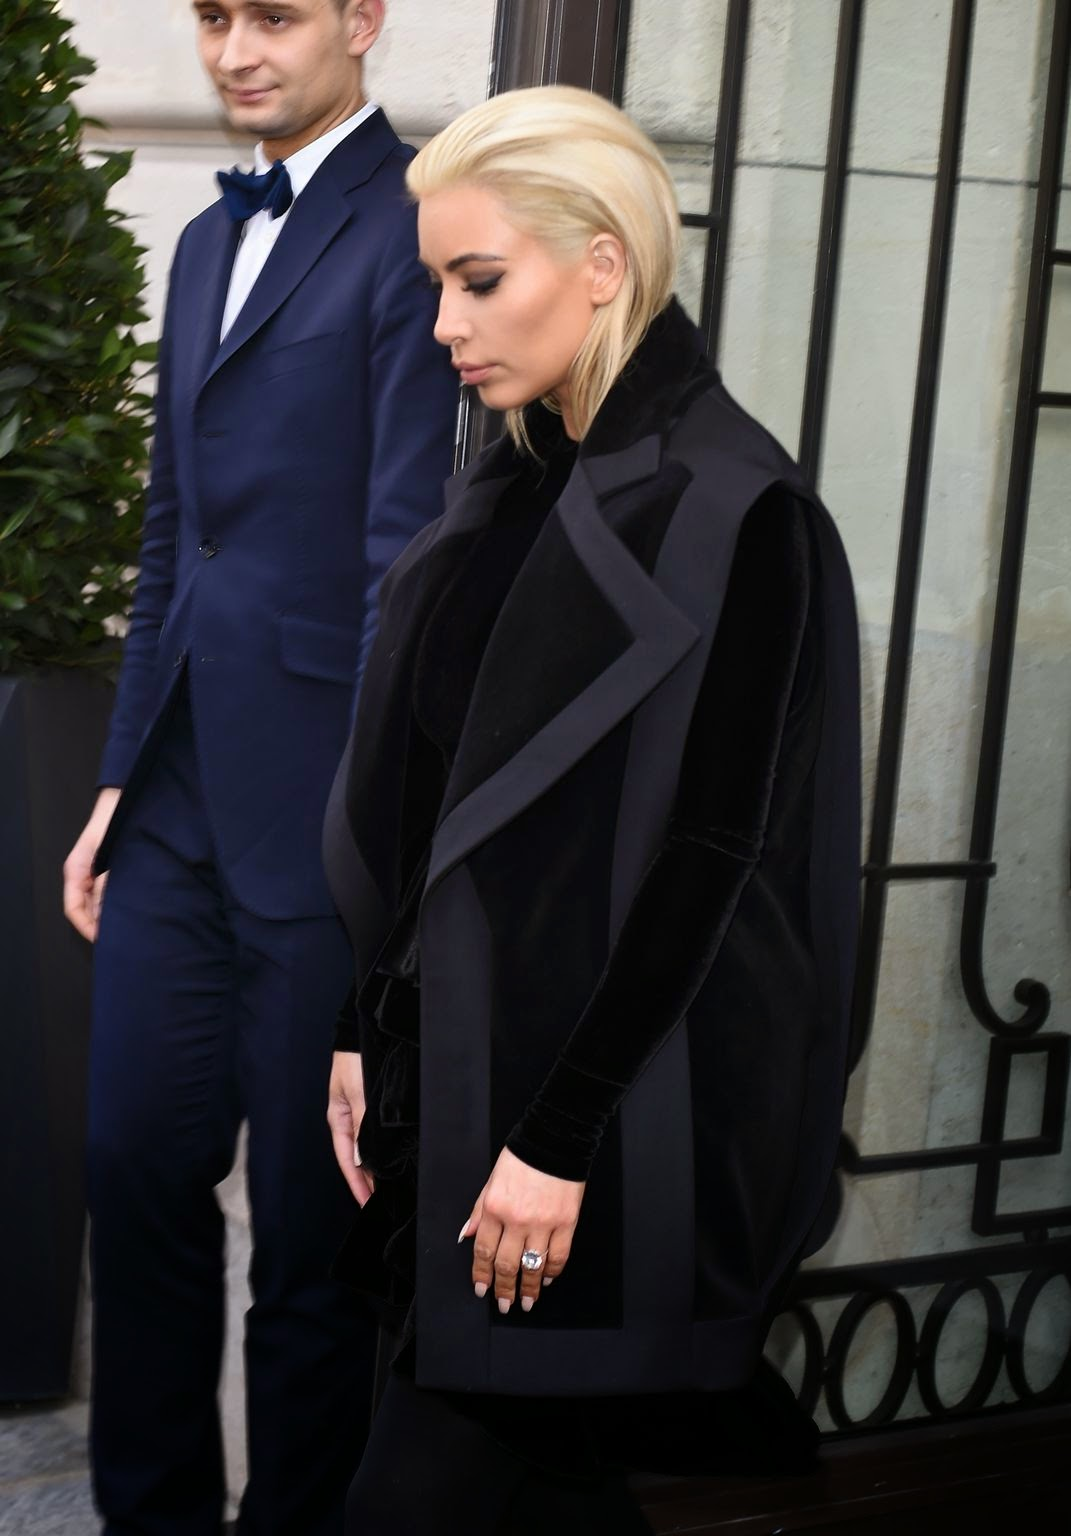 Kim Kardashian Shows Off Her New Platinum Blonde Hair In Paris